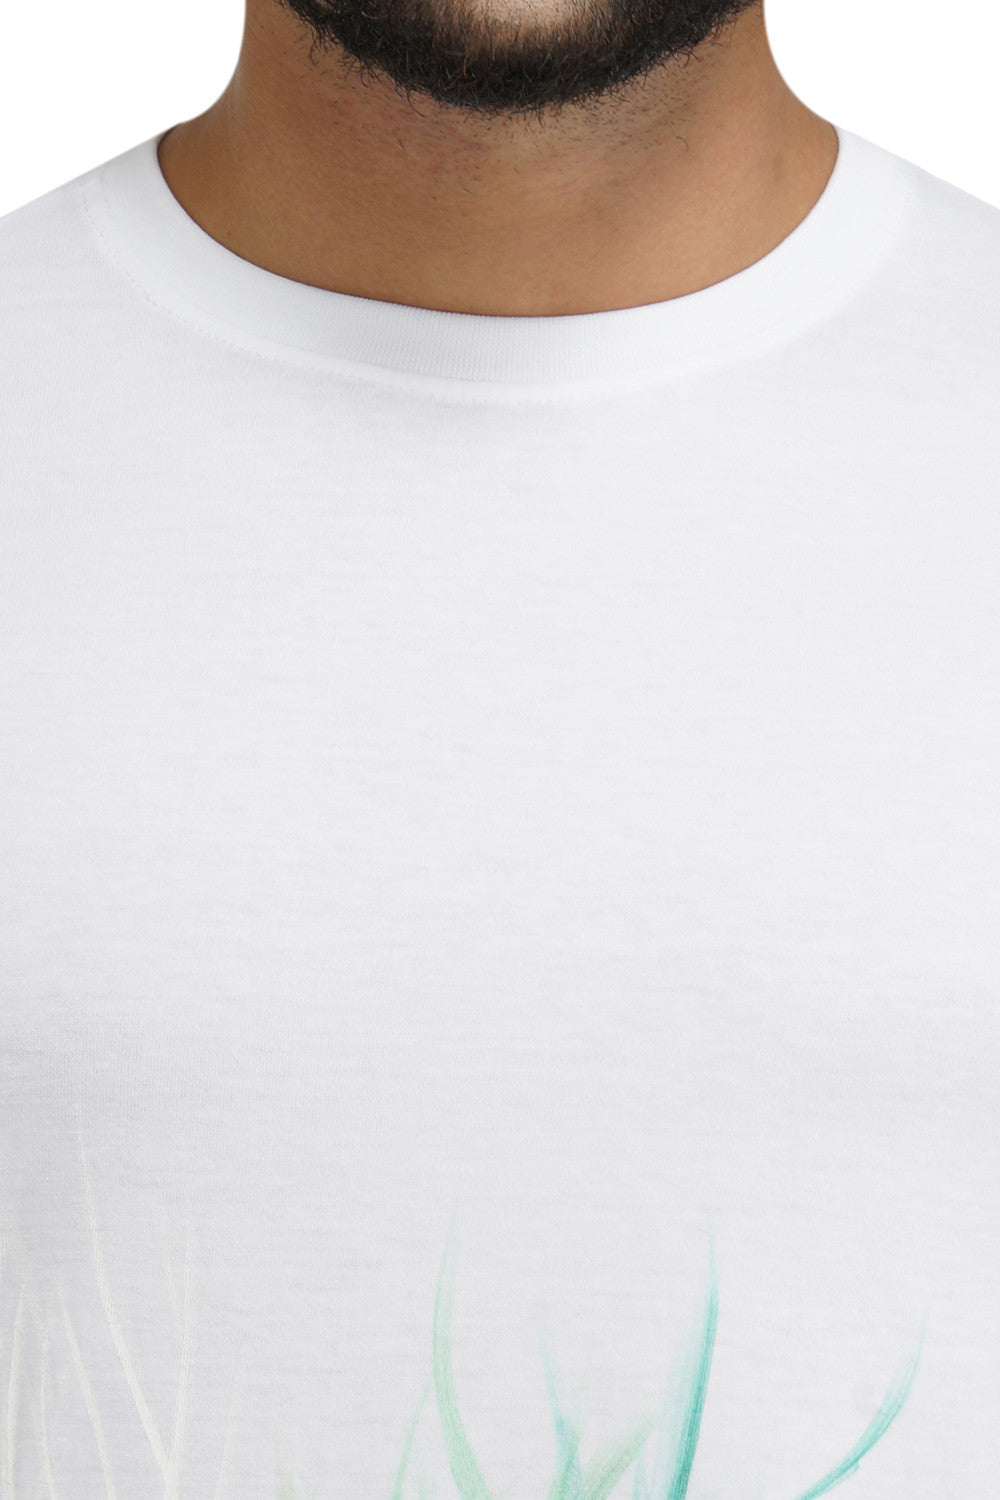 Hand-painted Waves White T-shirt - Rang Rage  - 5